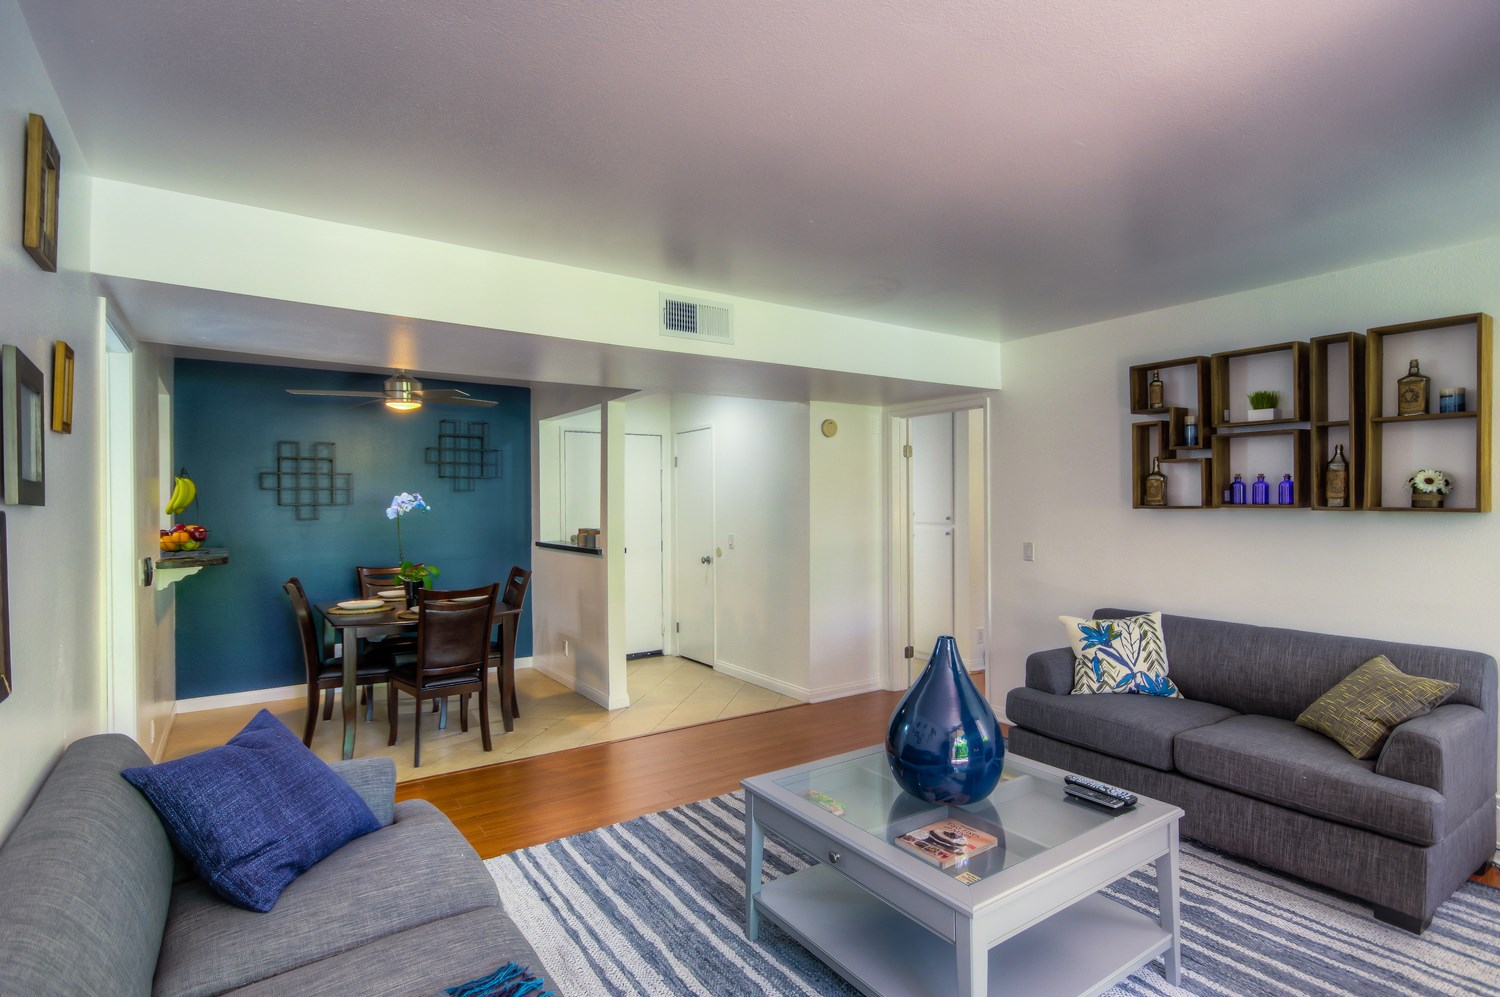 Contemporary FURNISHED, Pet-Friendly Condo Available for Short-Term Stays!